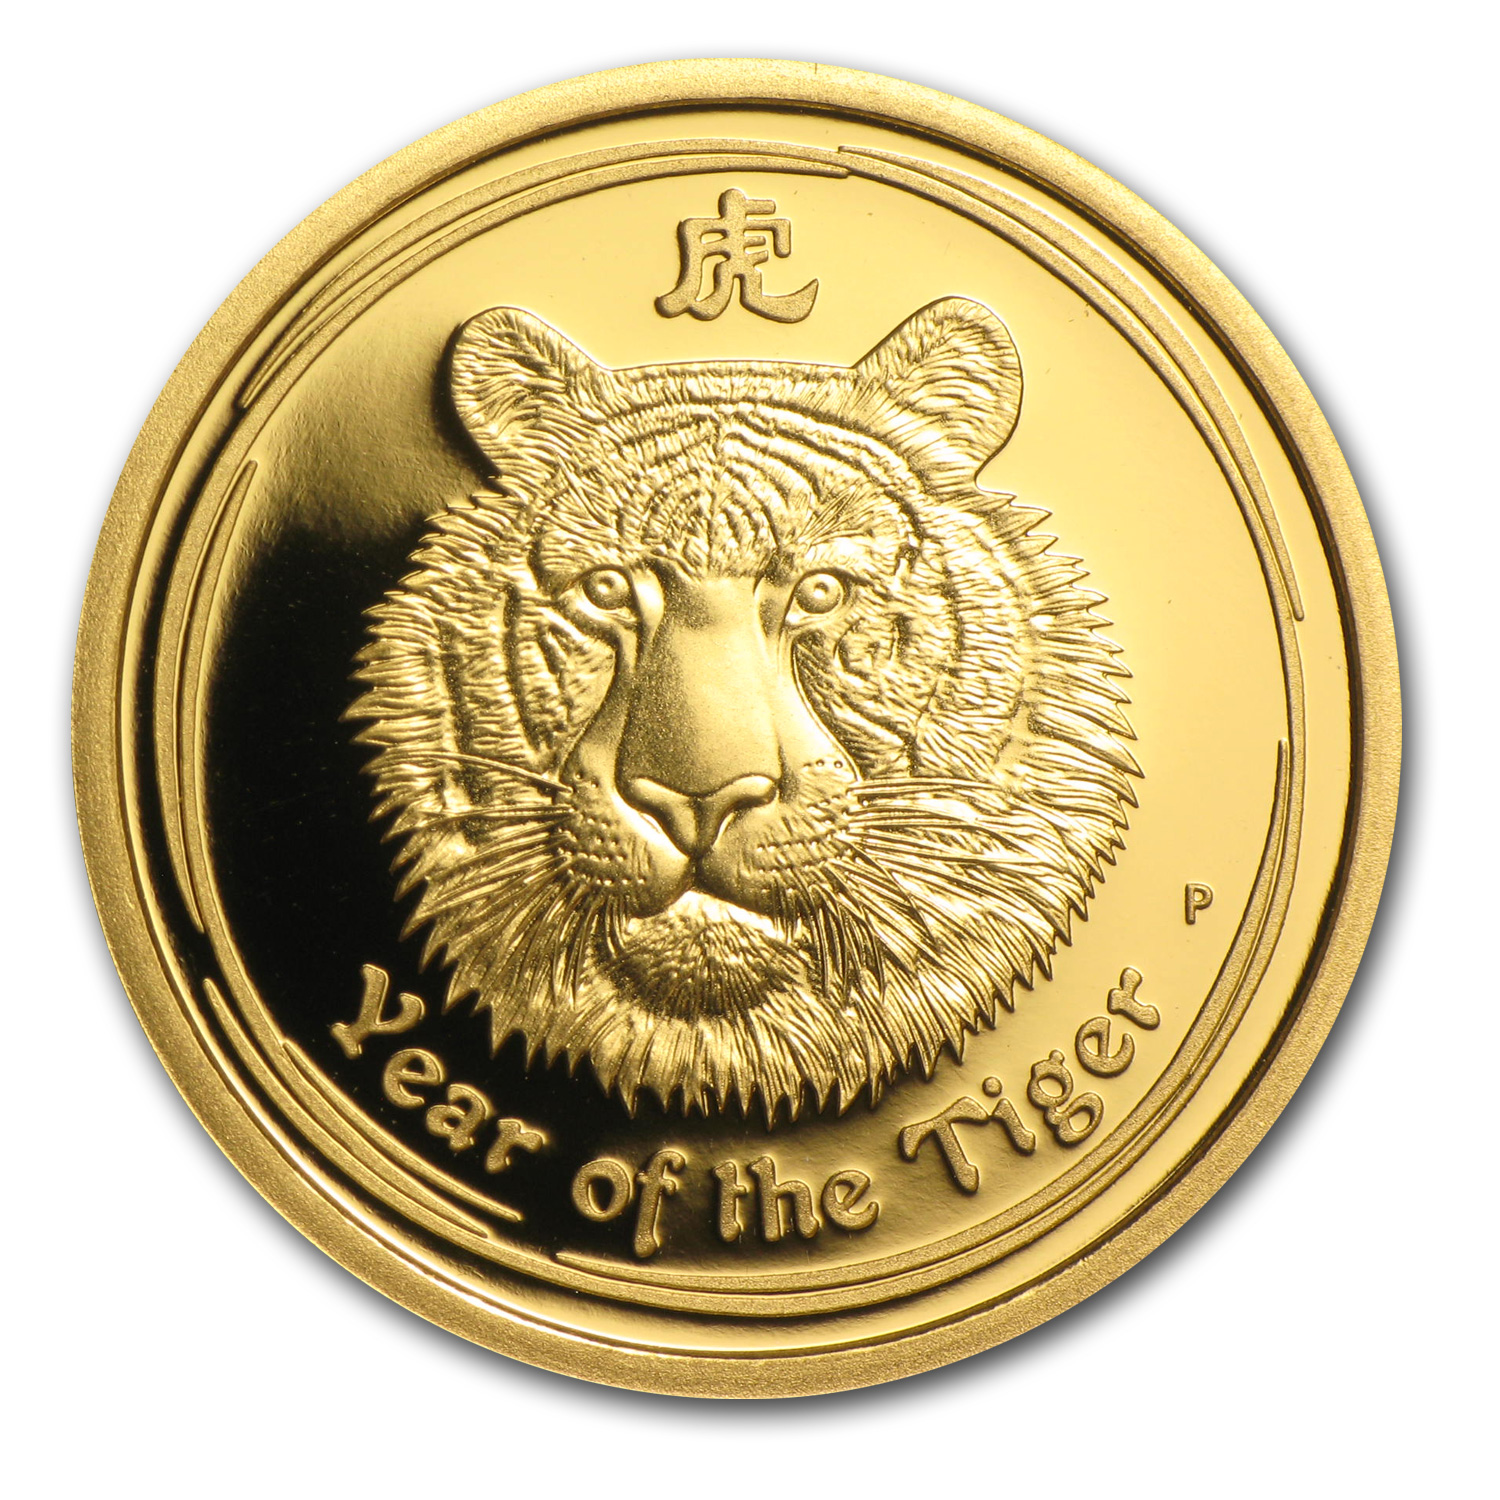 2010 Australia 1/4 oz Gold Lunar Tiger Proof (Series II)